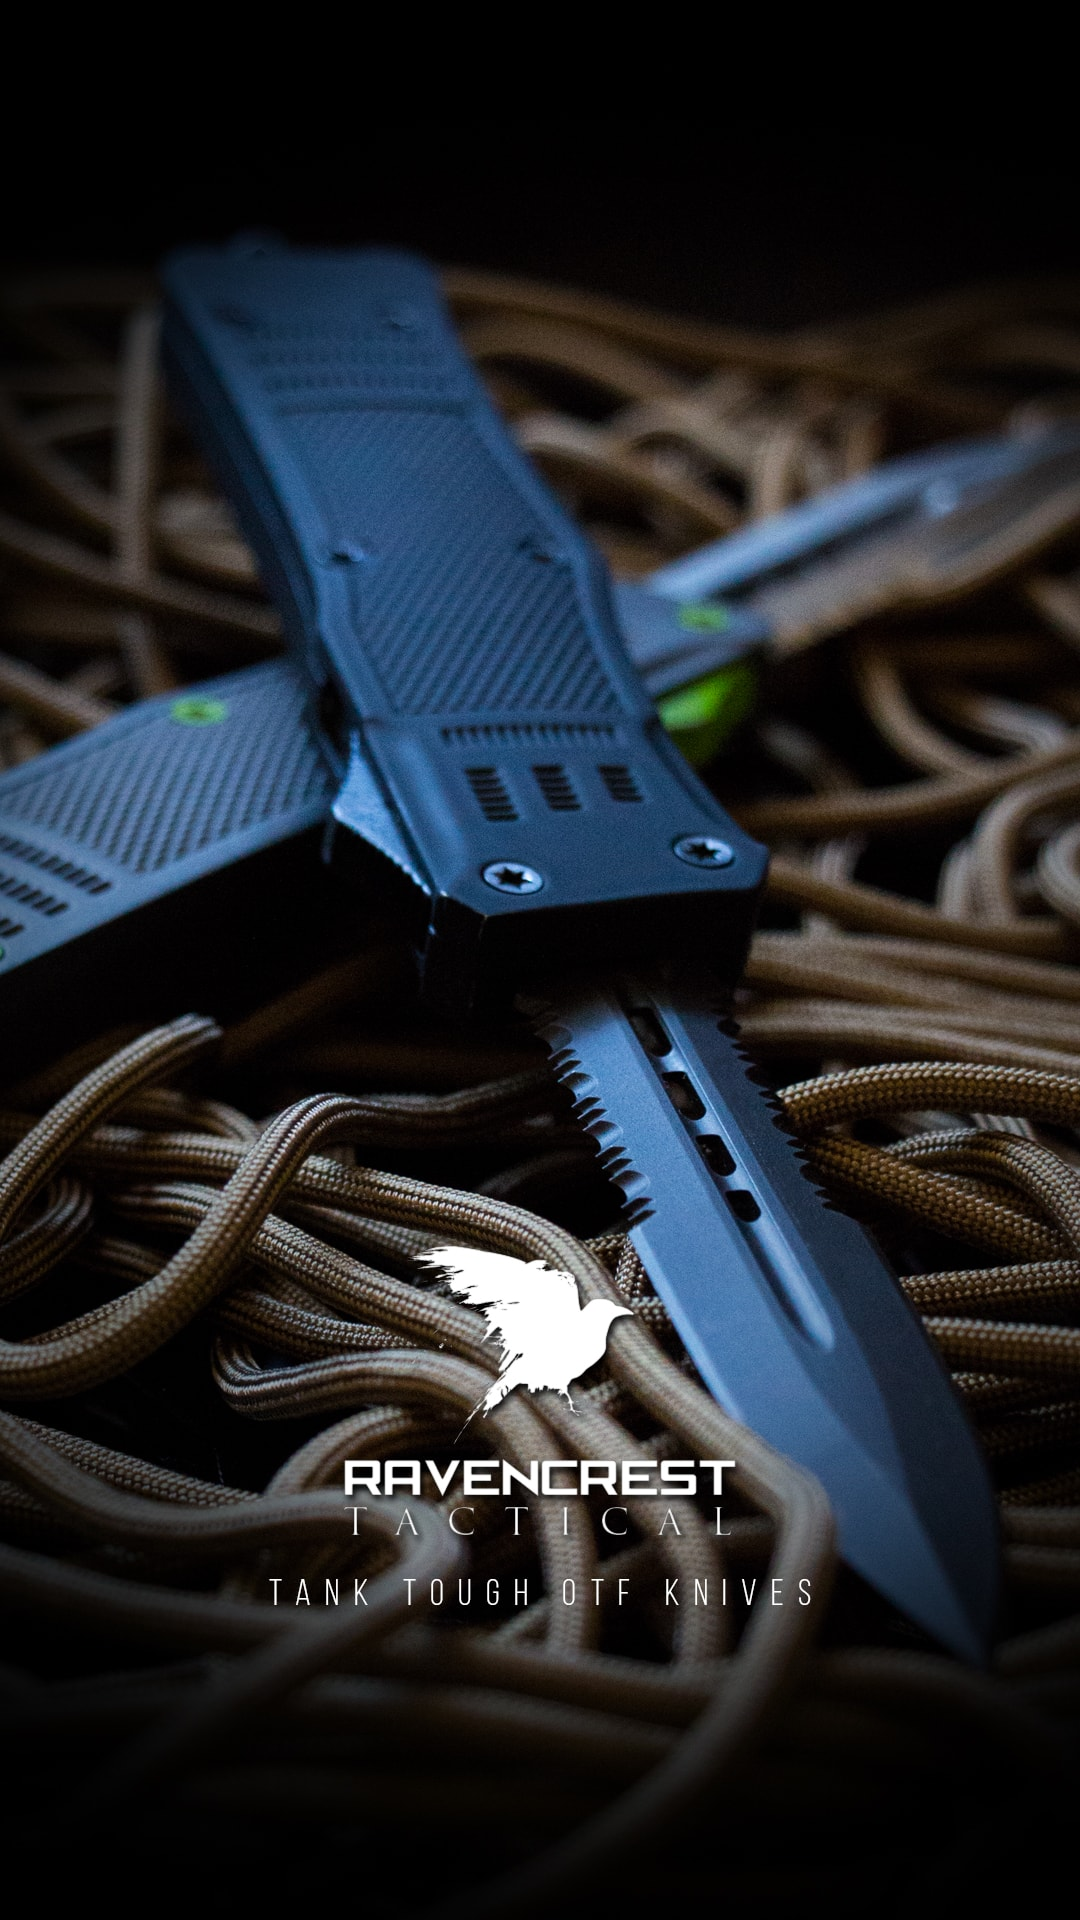 Free Phone Wallpaper Digital Download Ravencrest Tactical